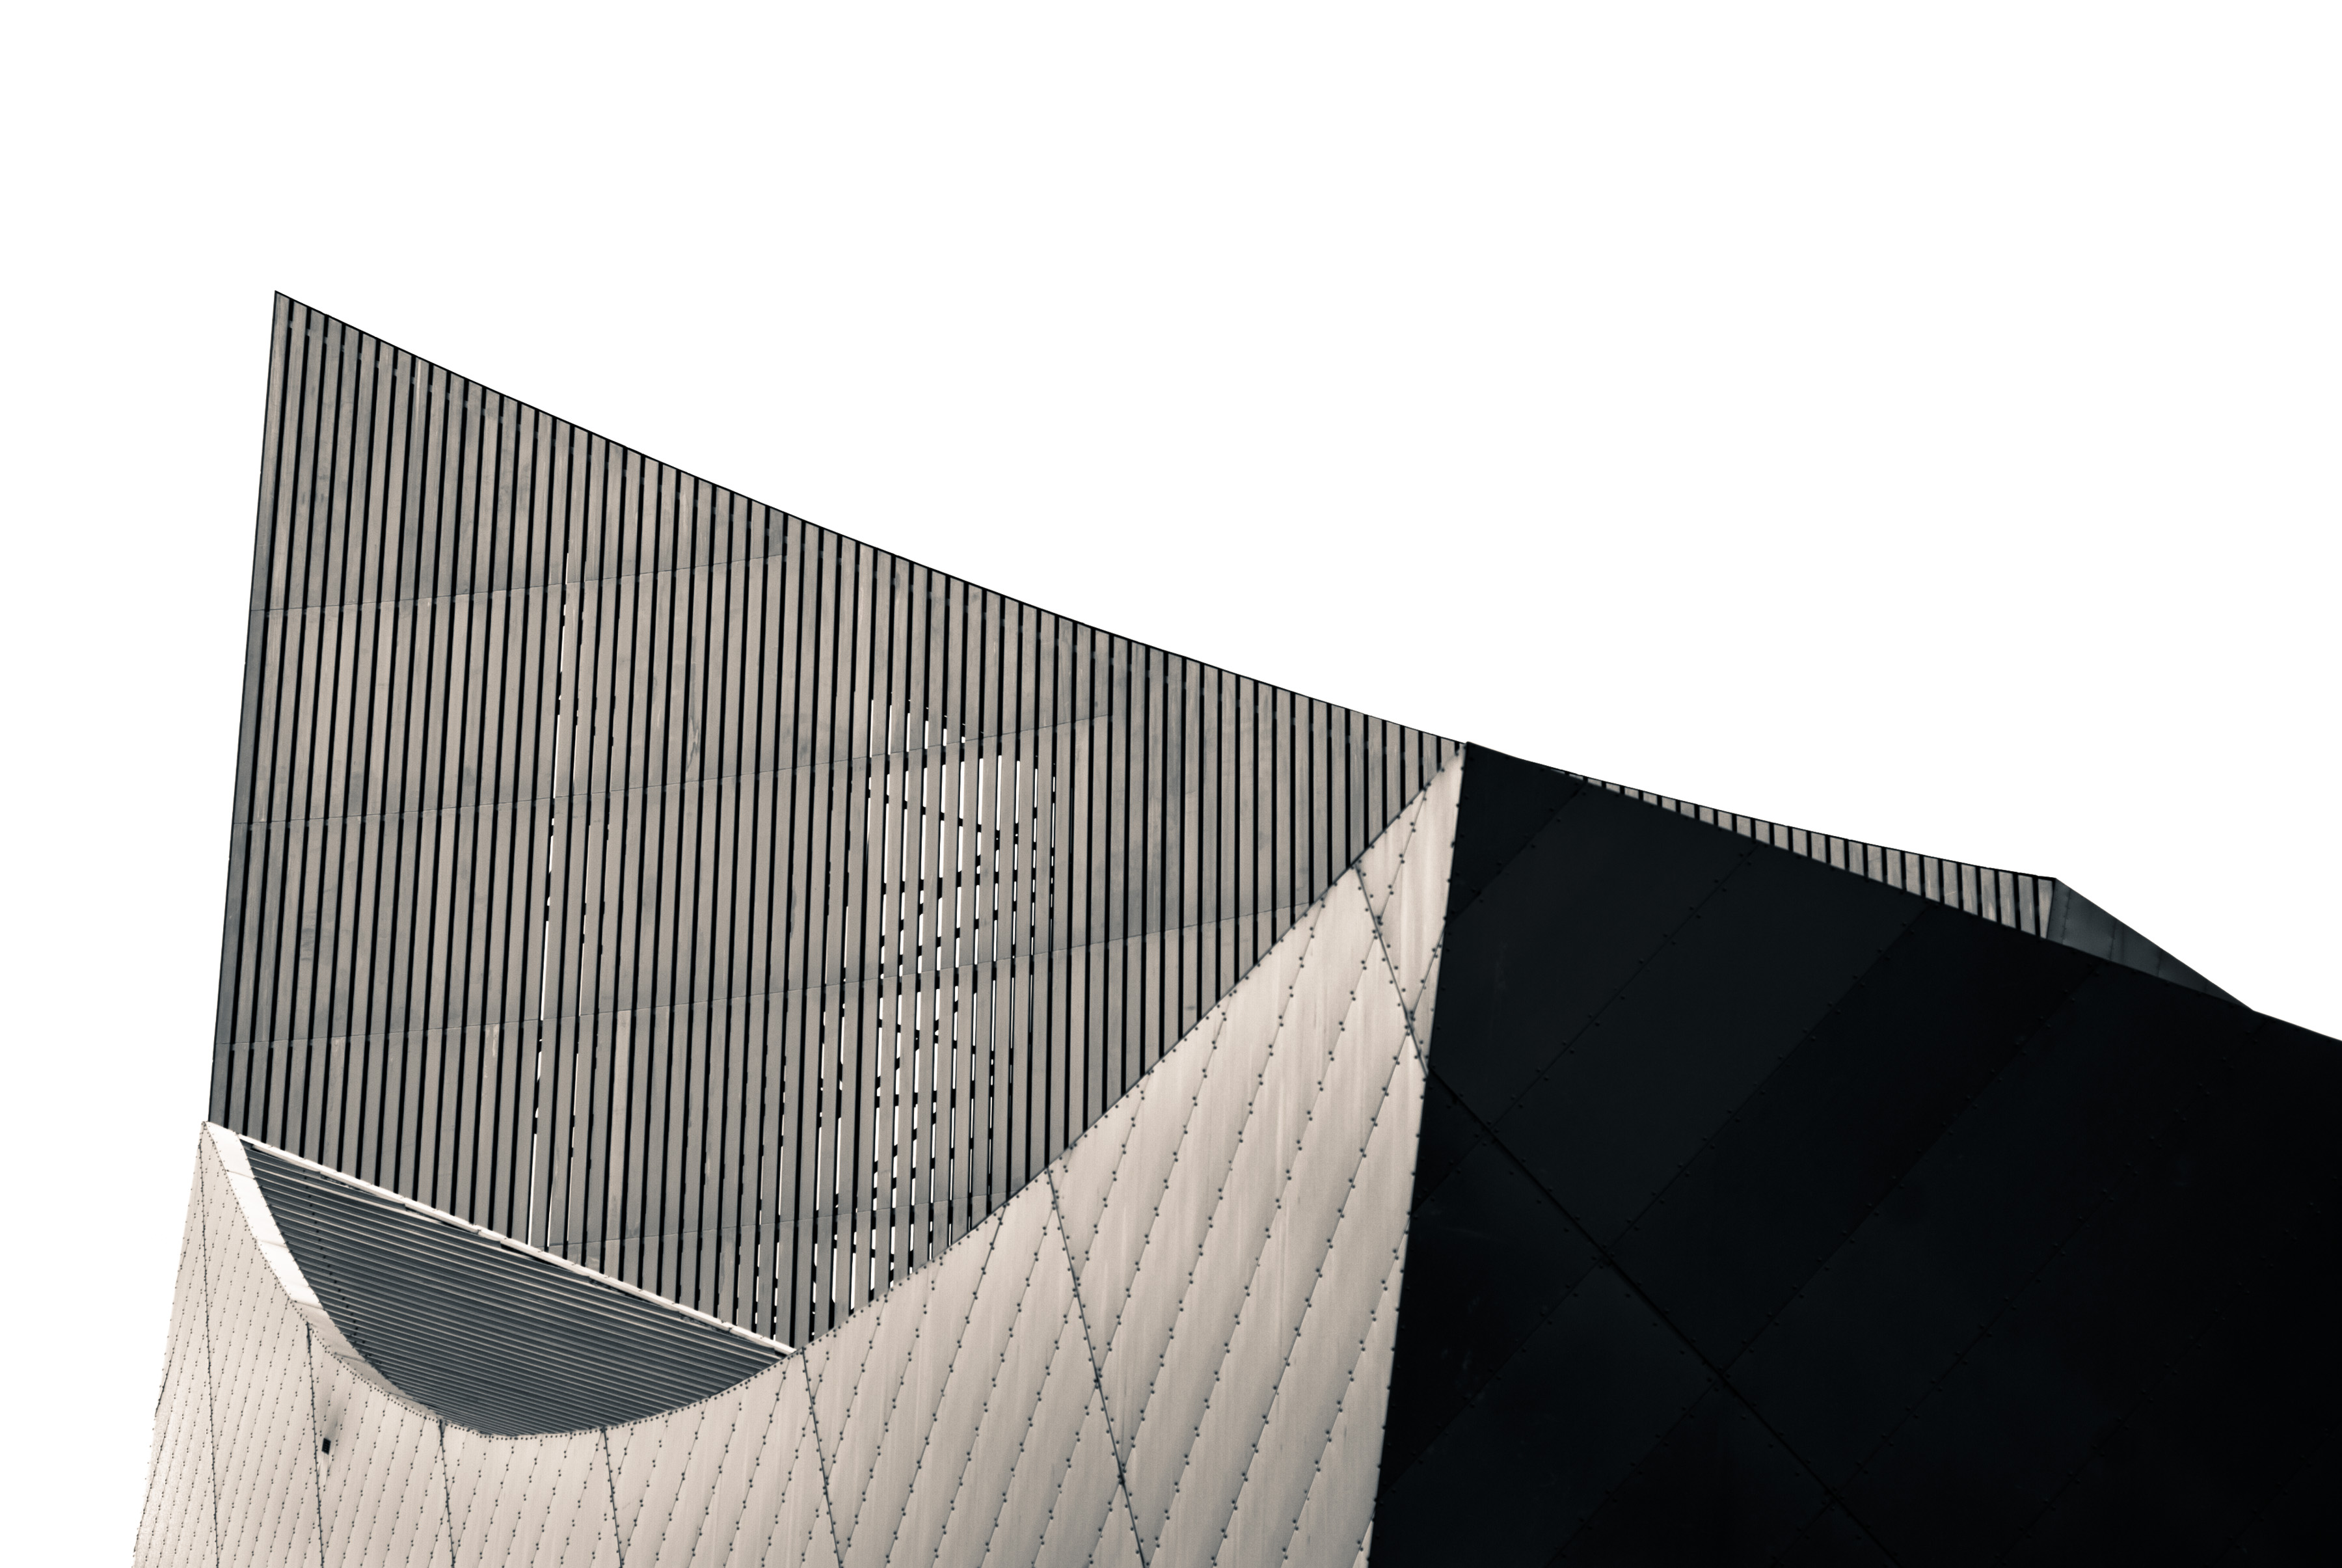 Architectural Photography, Manchester